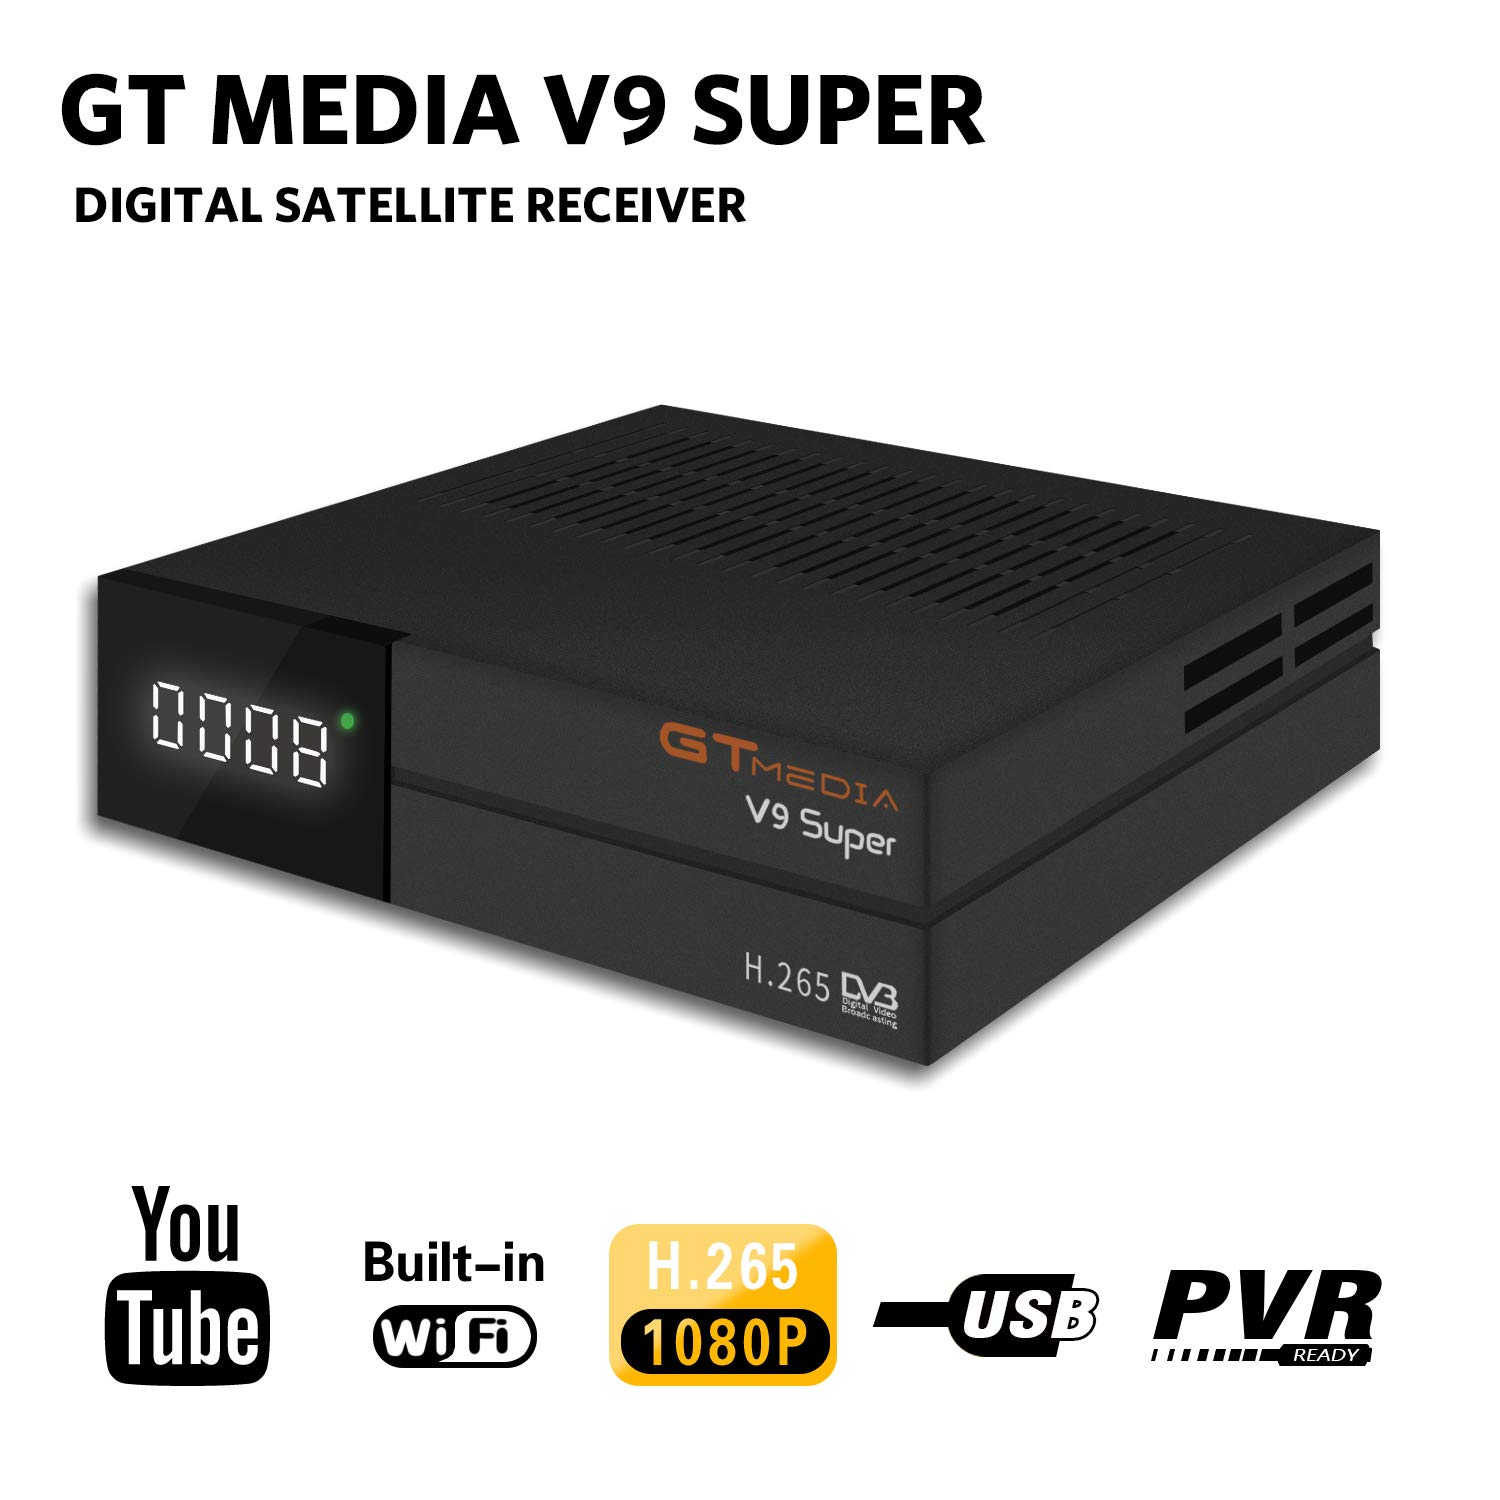 GTMEDIA V9 Full HD DVB-S2 Freesat Satellite Receiver H.265 Built-in WiFi TV Box Support PowerVu, DRE & Biss Key, DLNA,SAT to IP,Unicable,Satellite EPG by Aoxun by Aoxun